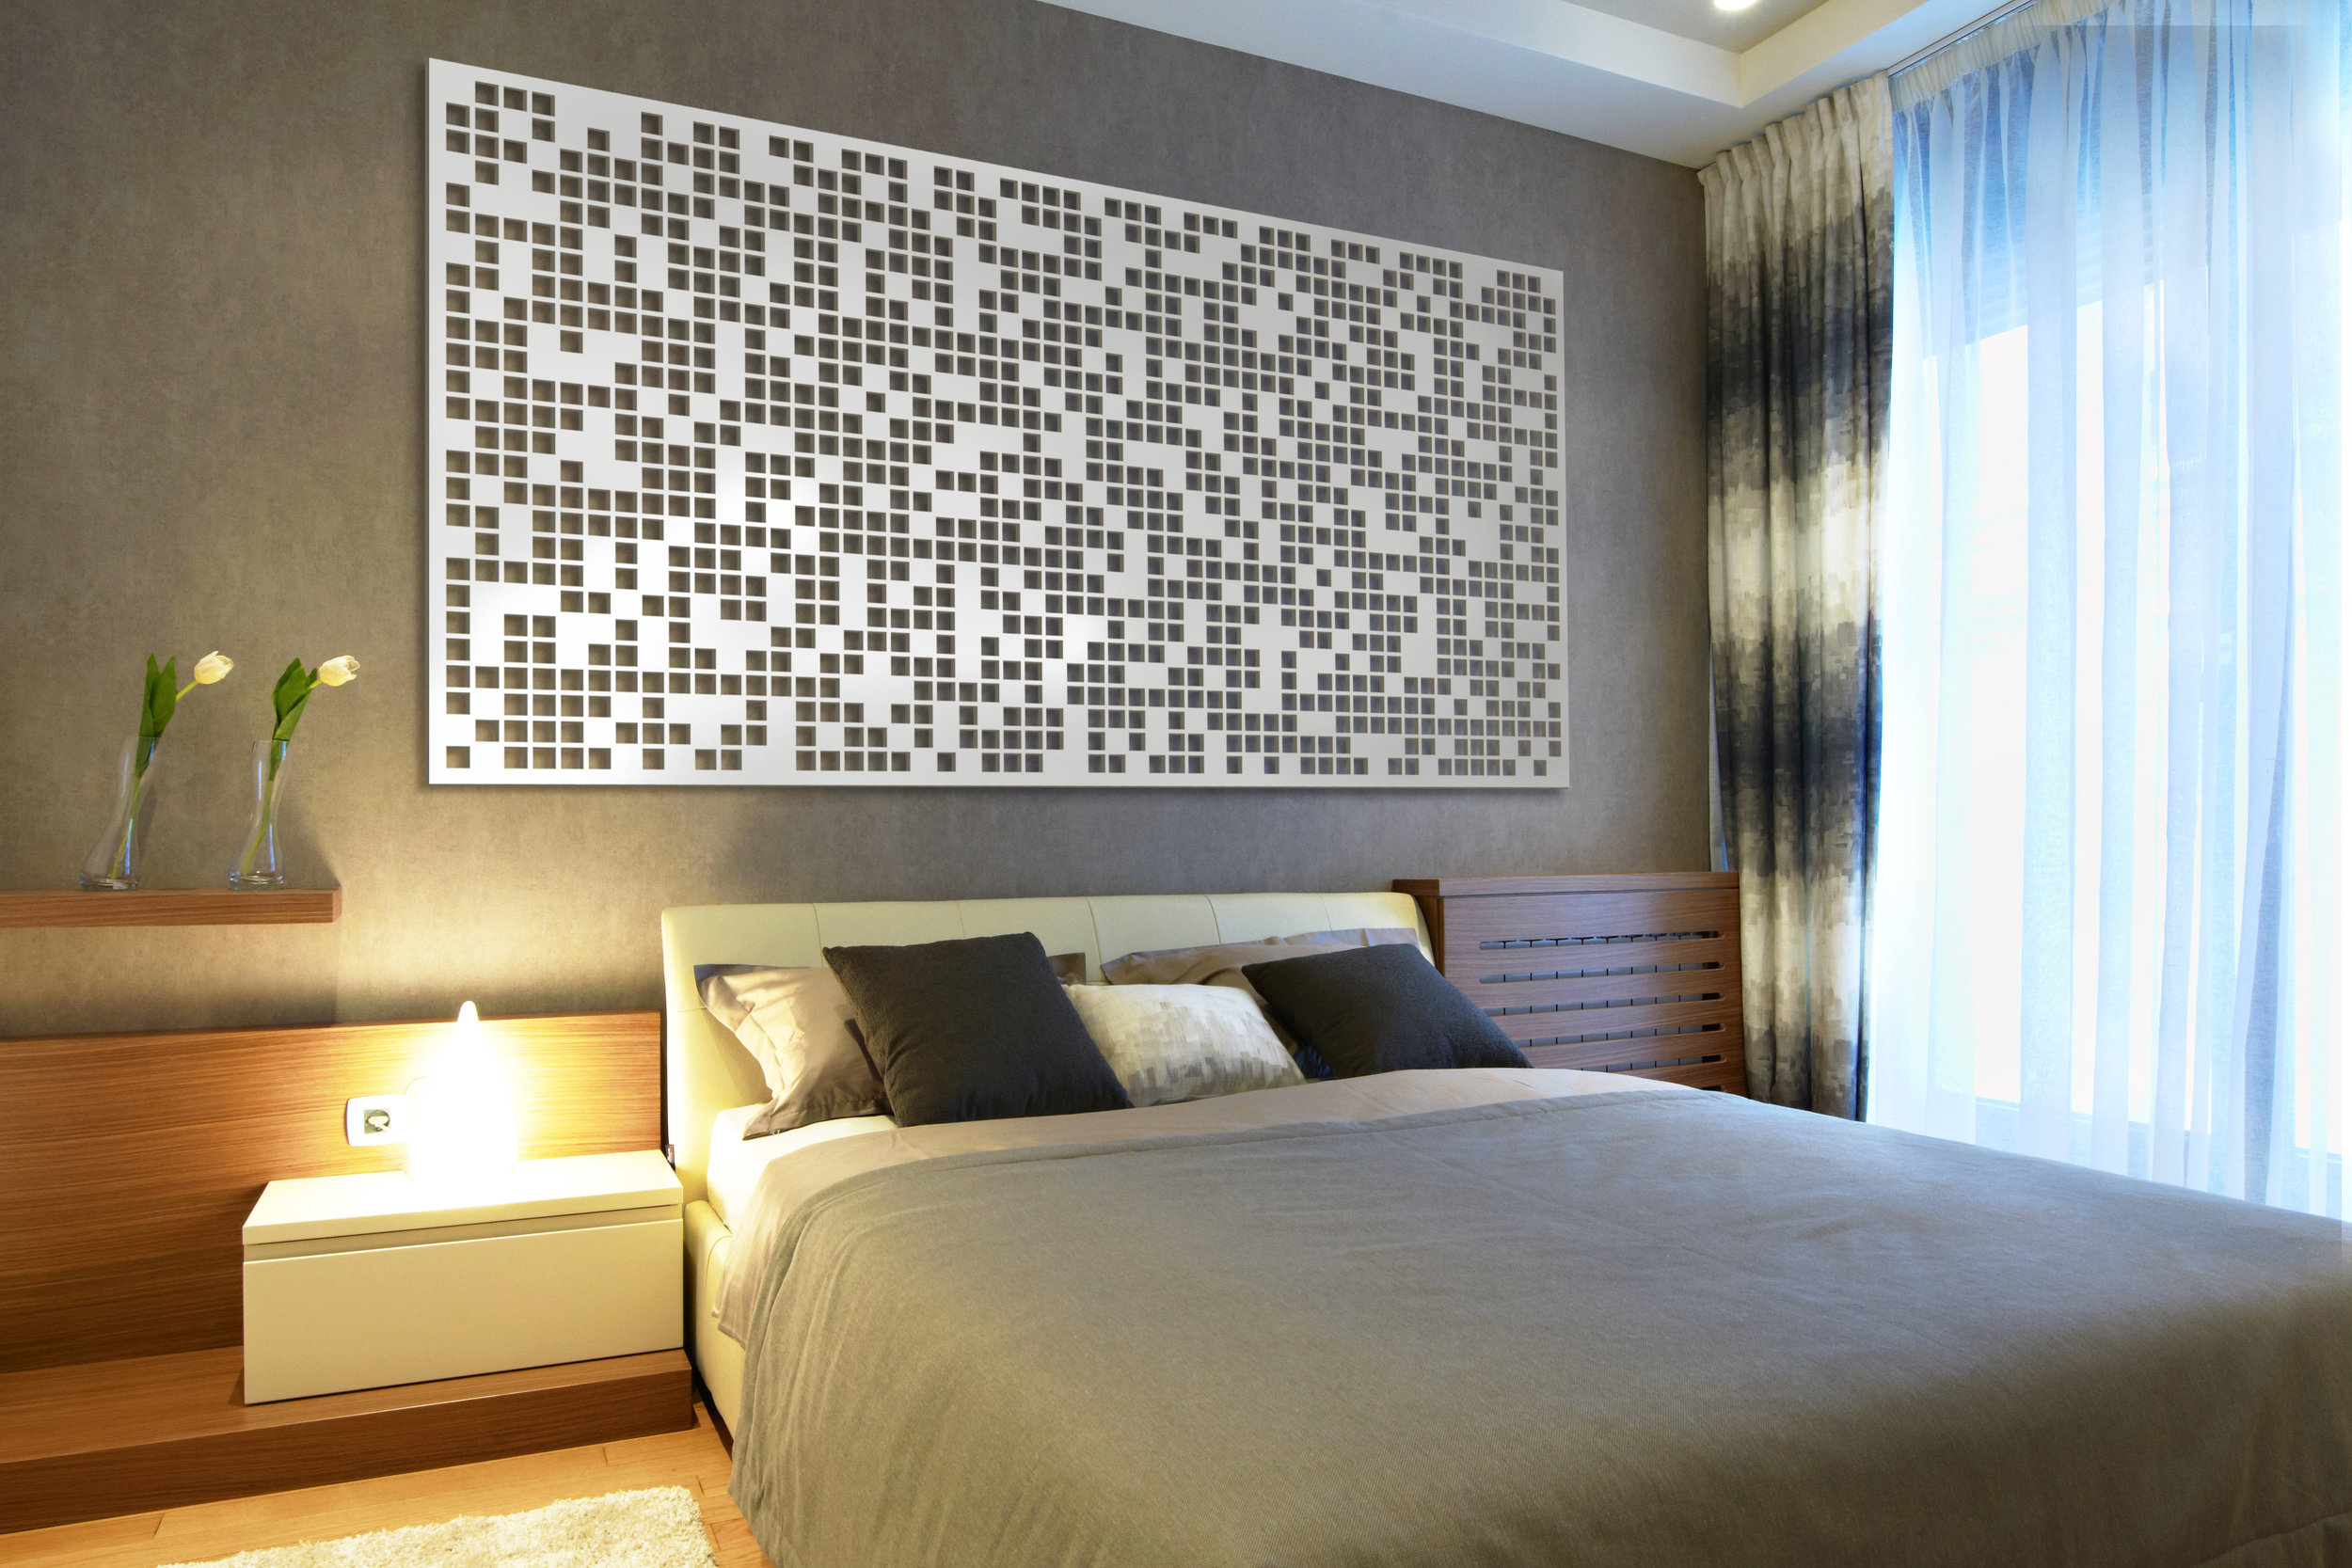 Installation Rendering C   Pixel decorative hotel wall panel - painted